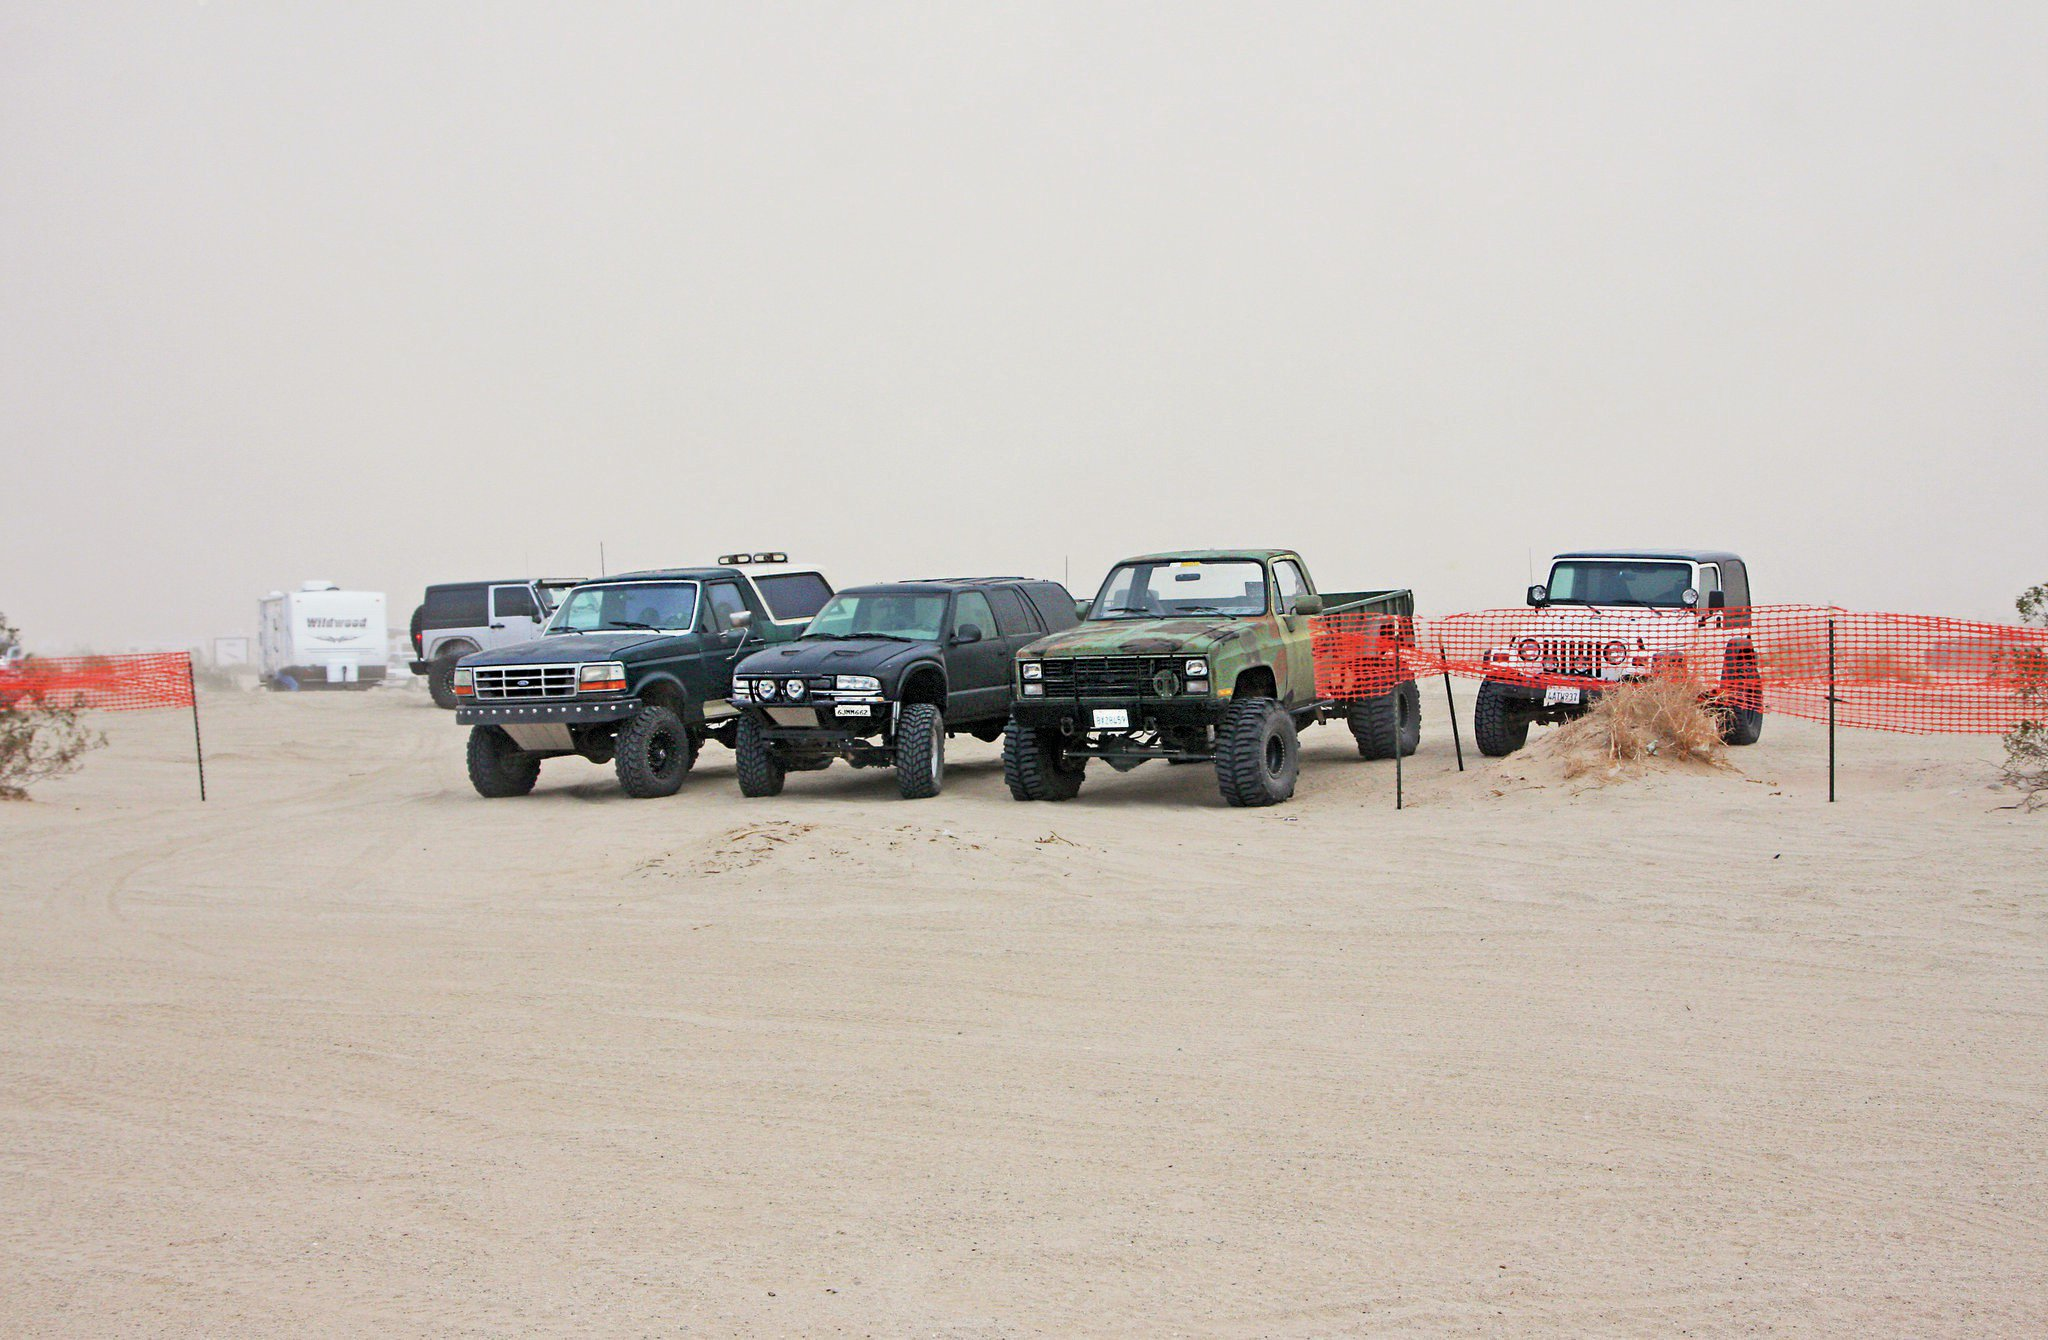 Jeeps at Ocotillo Wells